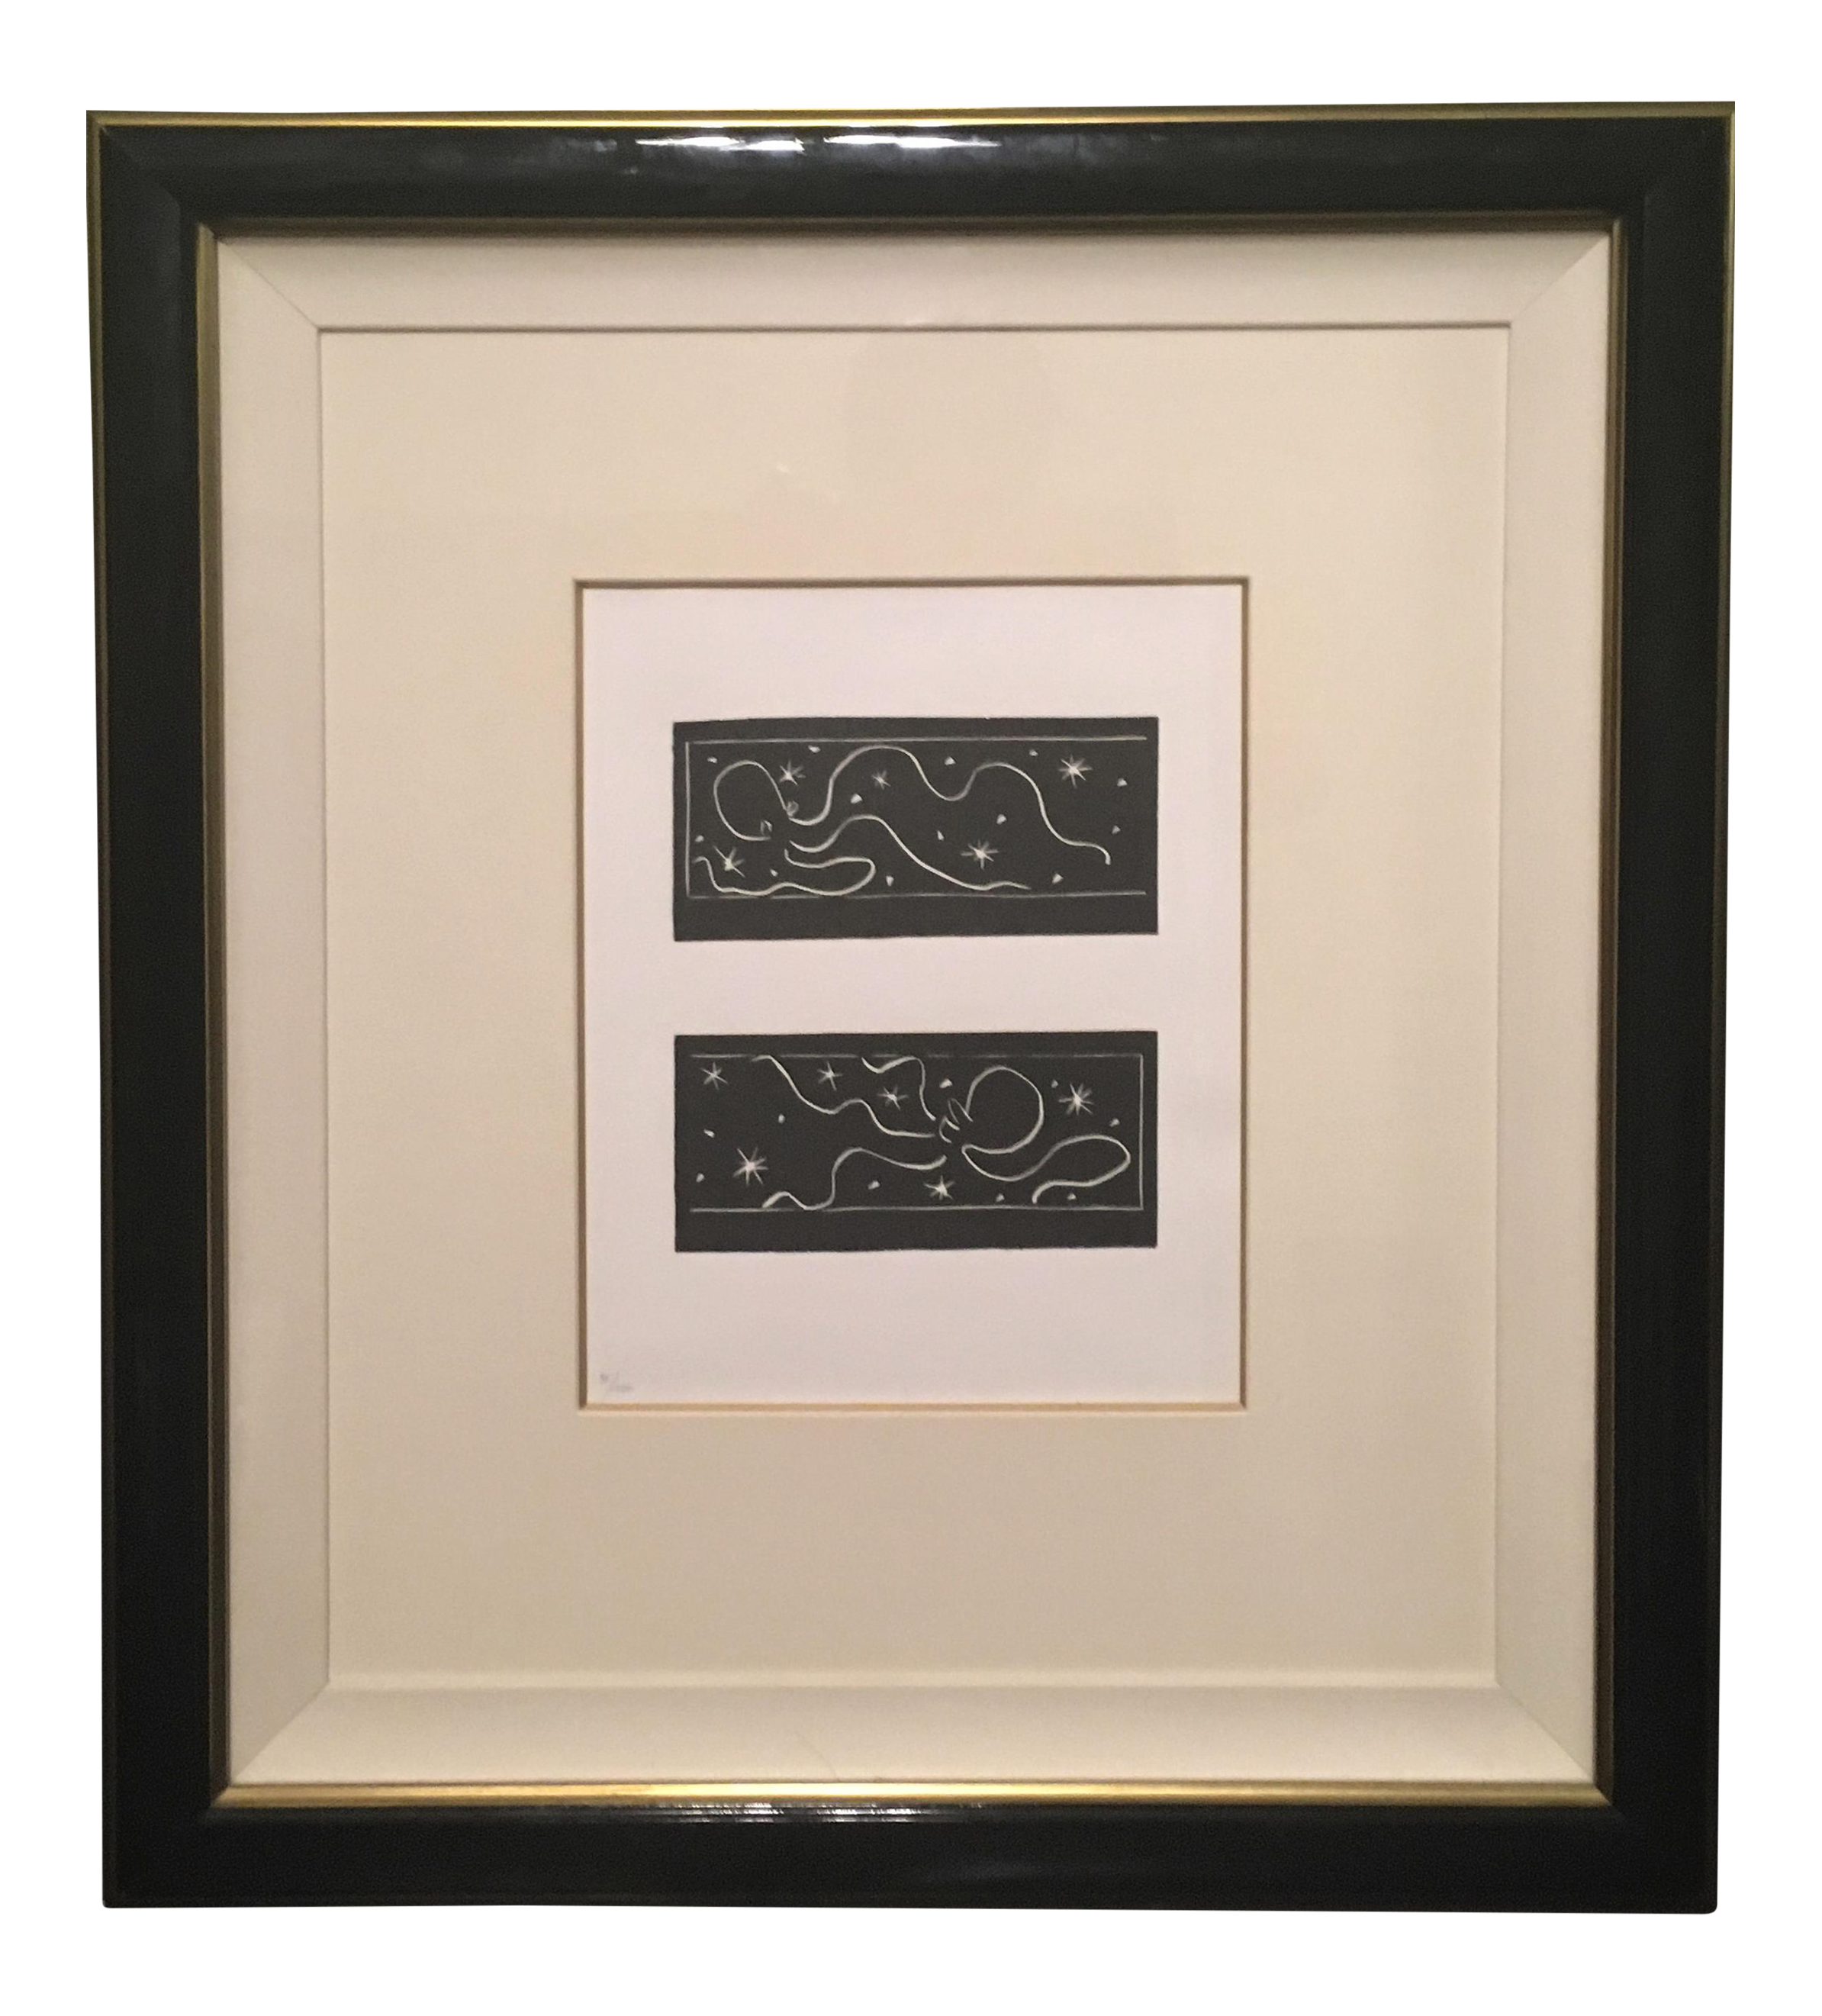 Matisse drawing window. Linocuts from pasiphae by